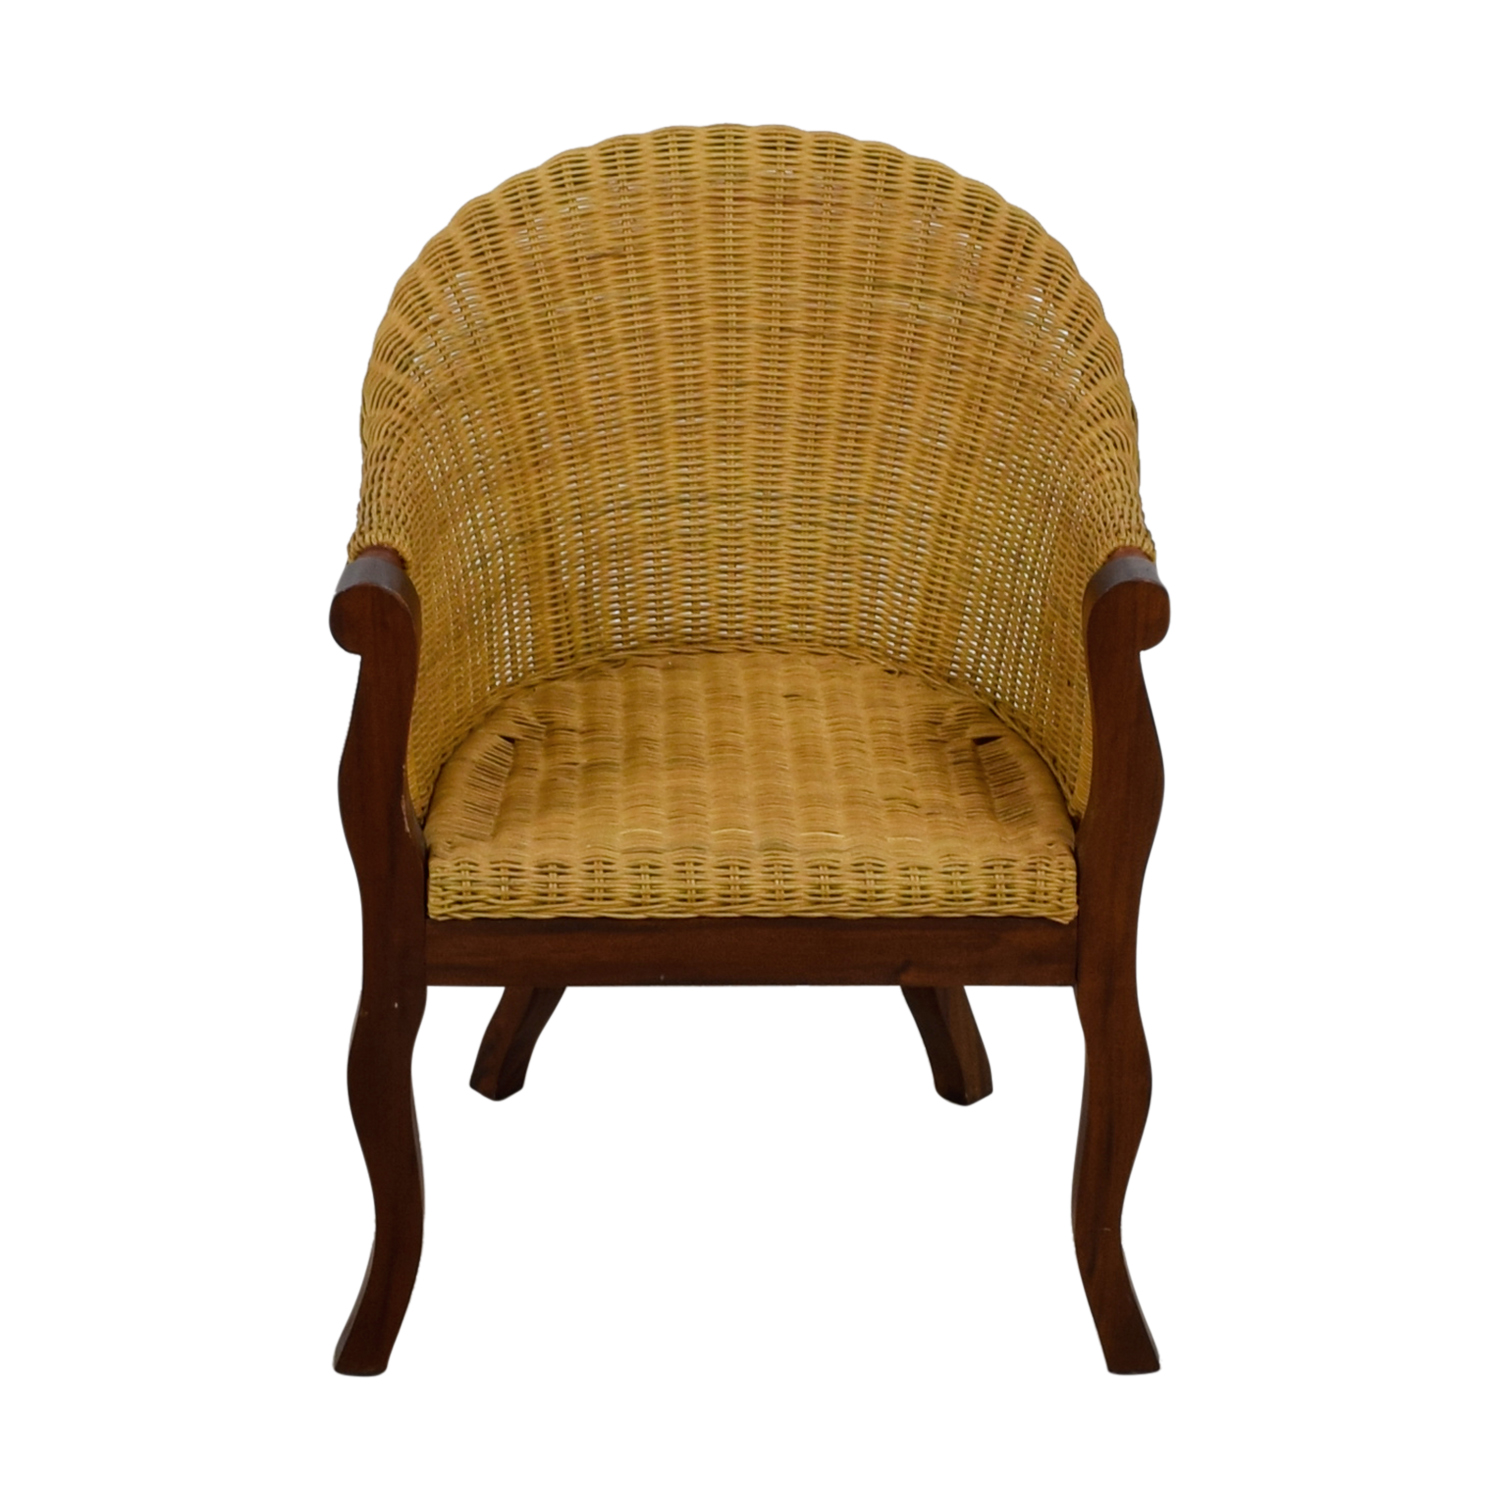 67 Off Wicker And Wood Accent Chair Chairs